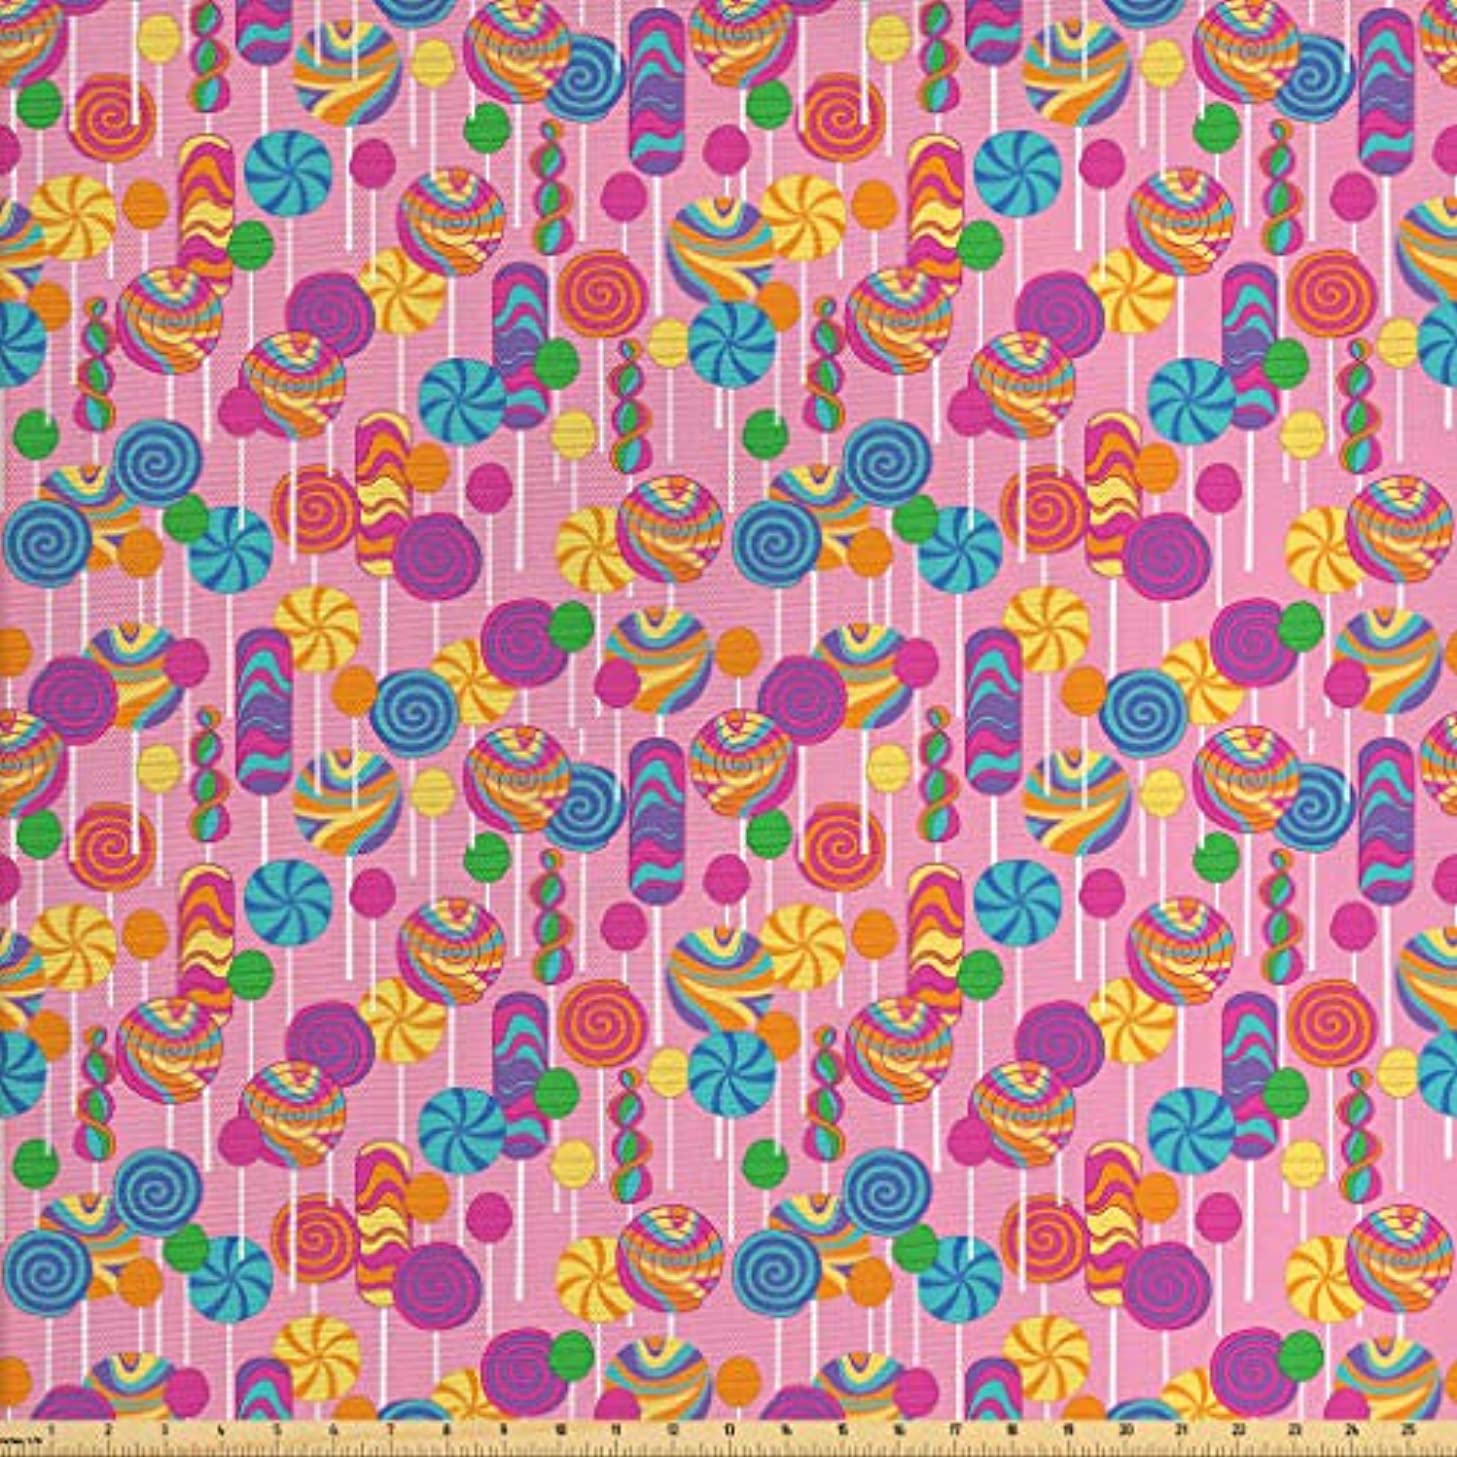 Lunarable Colorful Fabric by The Yard, Candy Pattern Multicolored Elements Fun Happiness Sweets Sugar Fun Theme Print, Decorative Fabric for Upholstery and Home Accents, 2 Yards, Multicolor